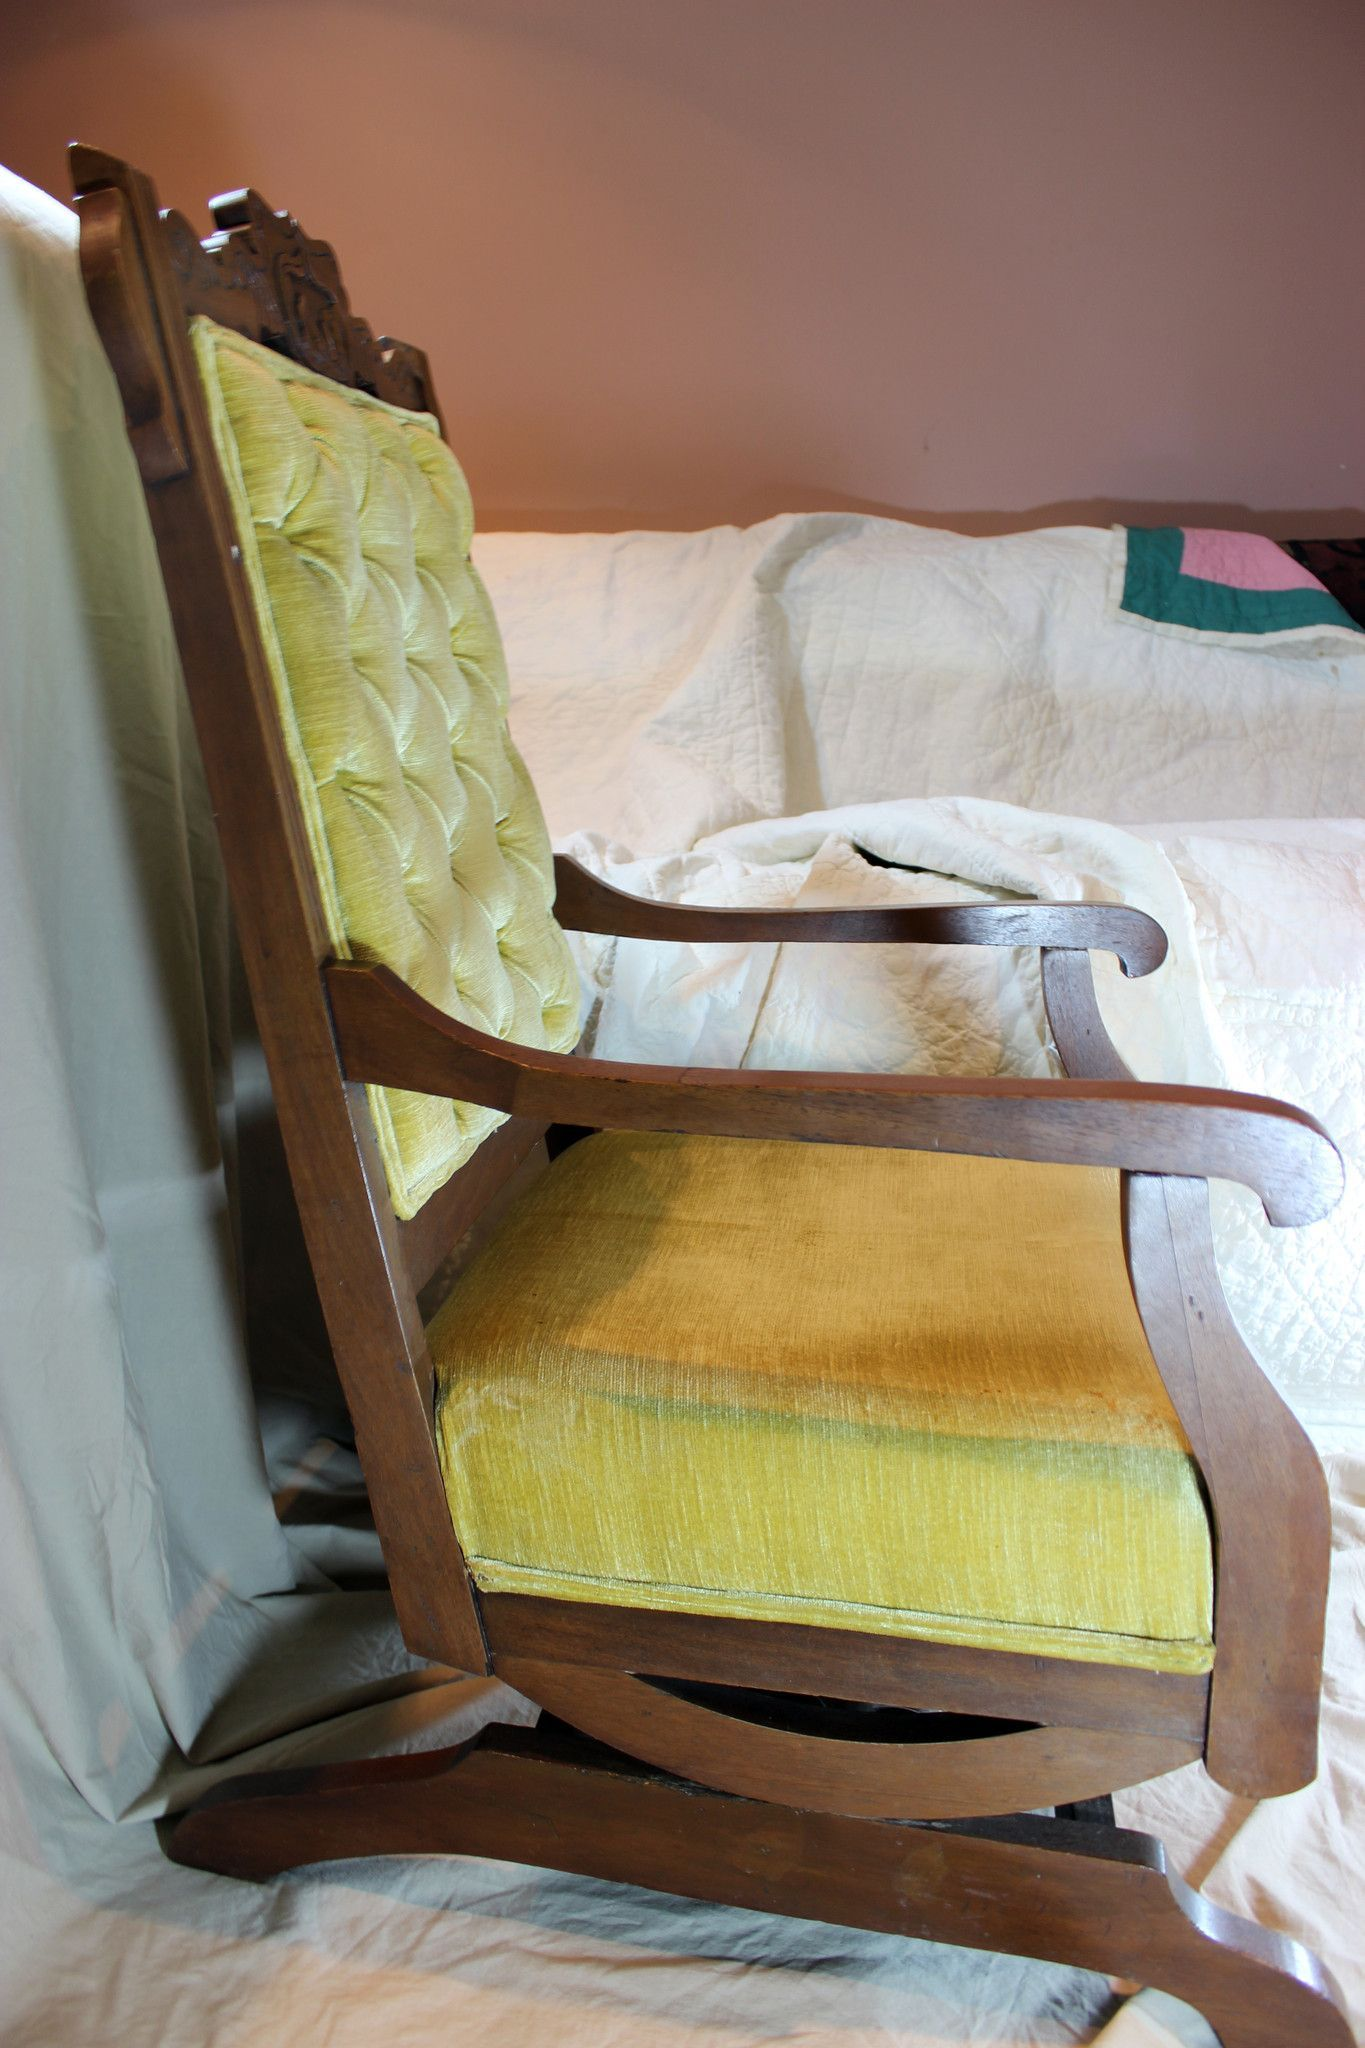 Vintage Platform Rocking Chair e day soon